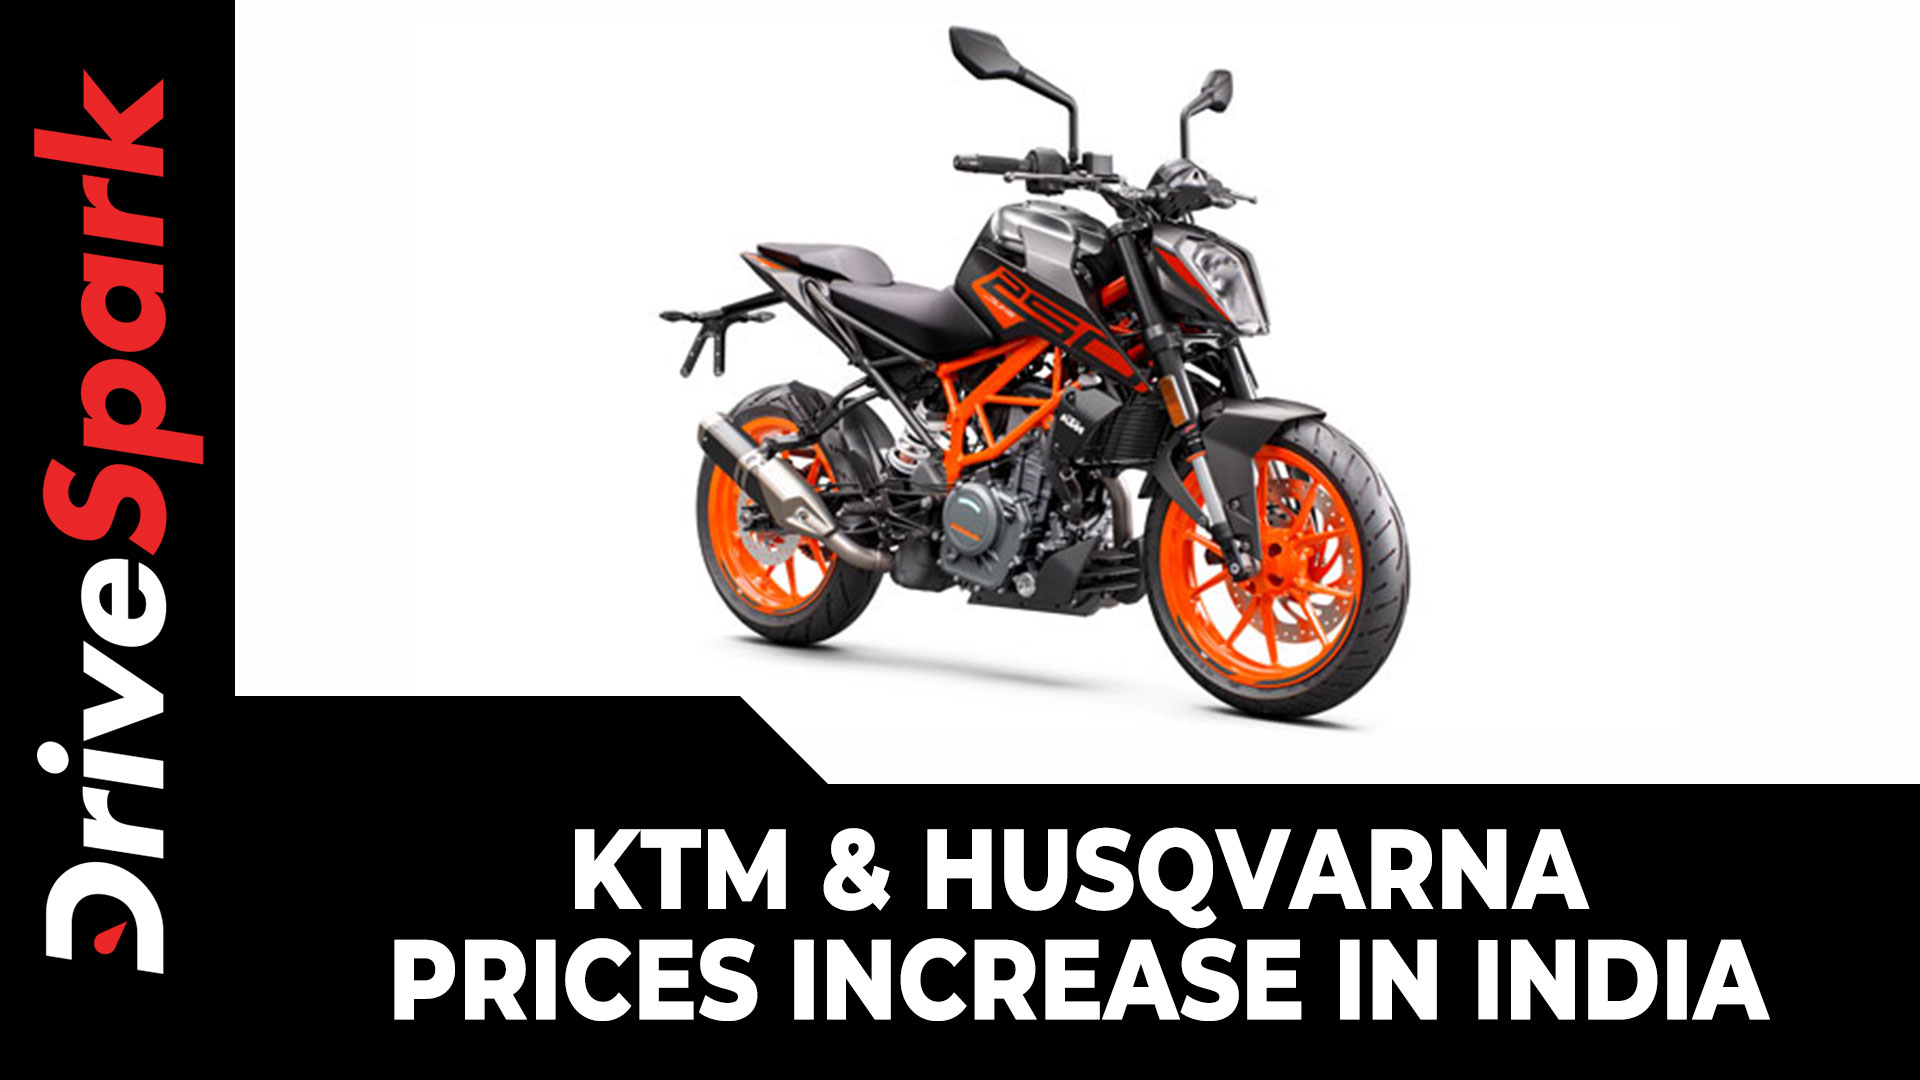 KTM & Husqvarna Prices Increase In India | New Prices & Other Details